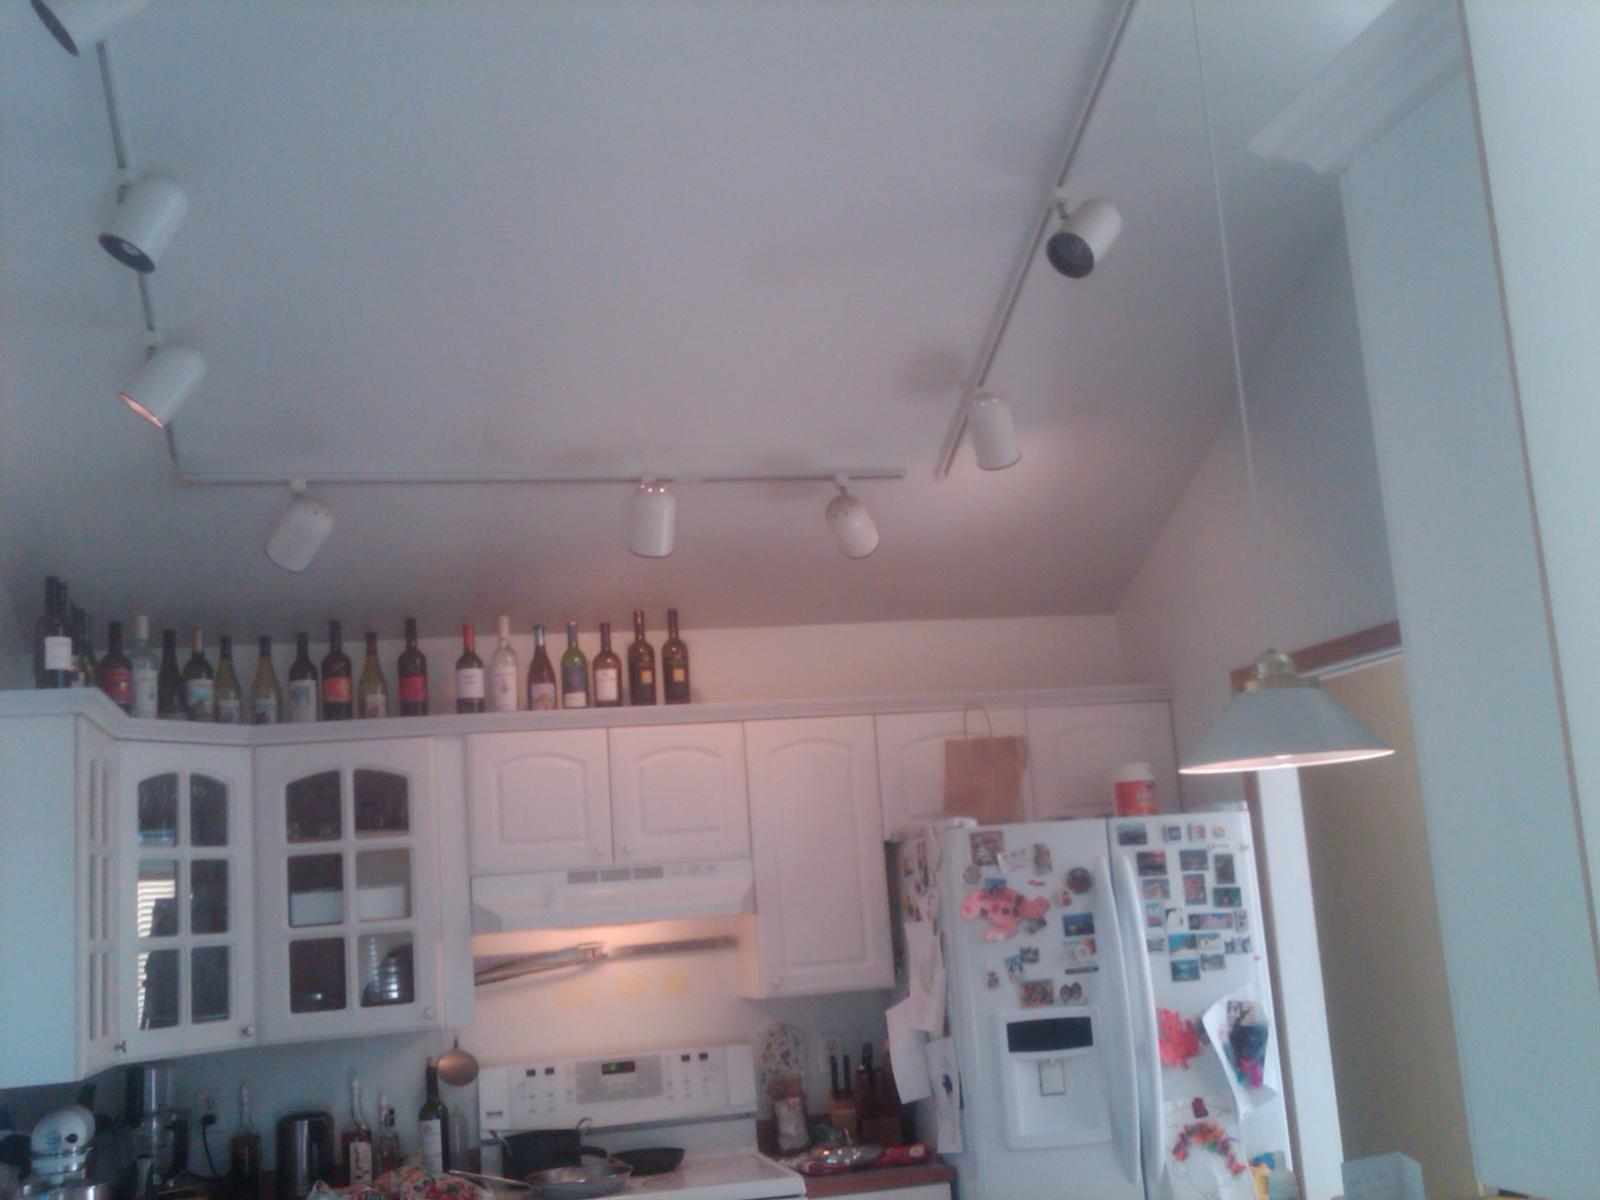 For Kitchen Ceilings Kitchen Needs Lighting Solution And Im Stumped Laminate